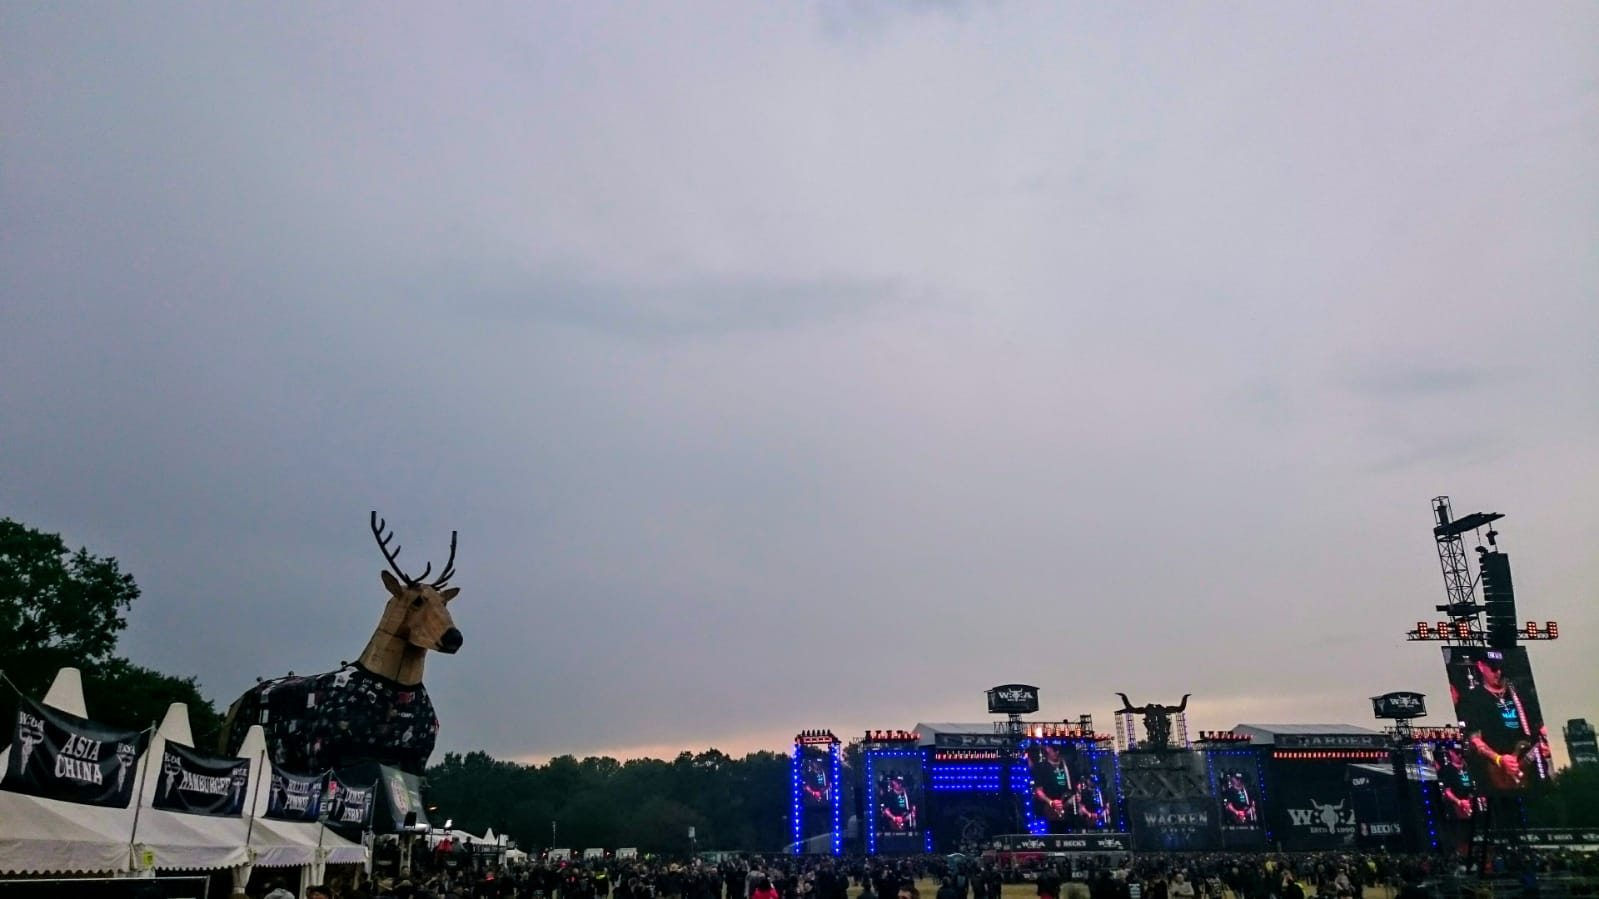 Wacken Open Air, Wacken 2019, Festival ground, Festival, Holy land, Open Air, Metal, Music, Biggy Pop, Blog, stage